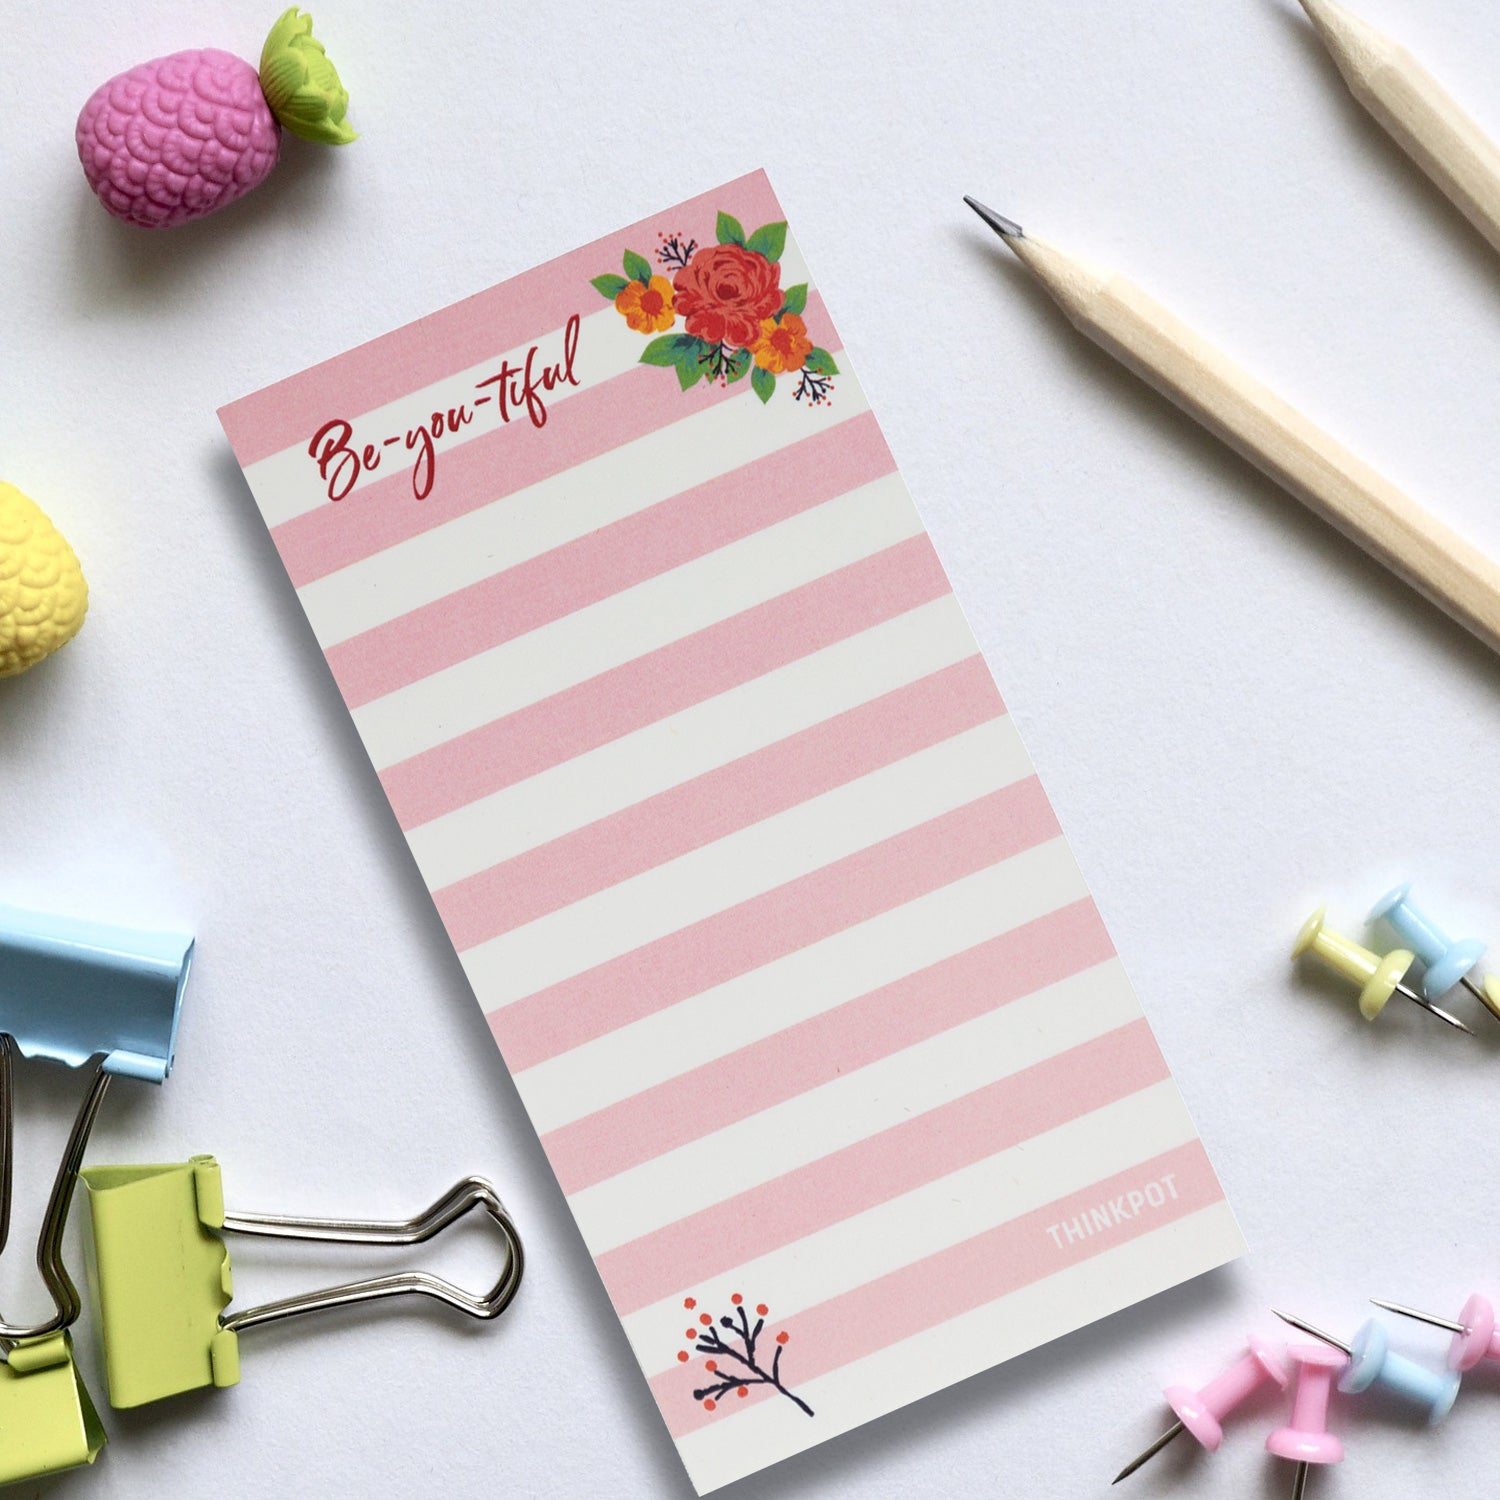 Beyoutiful Pink Memo Pad